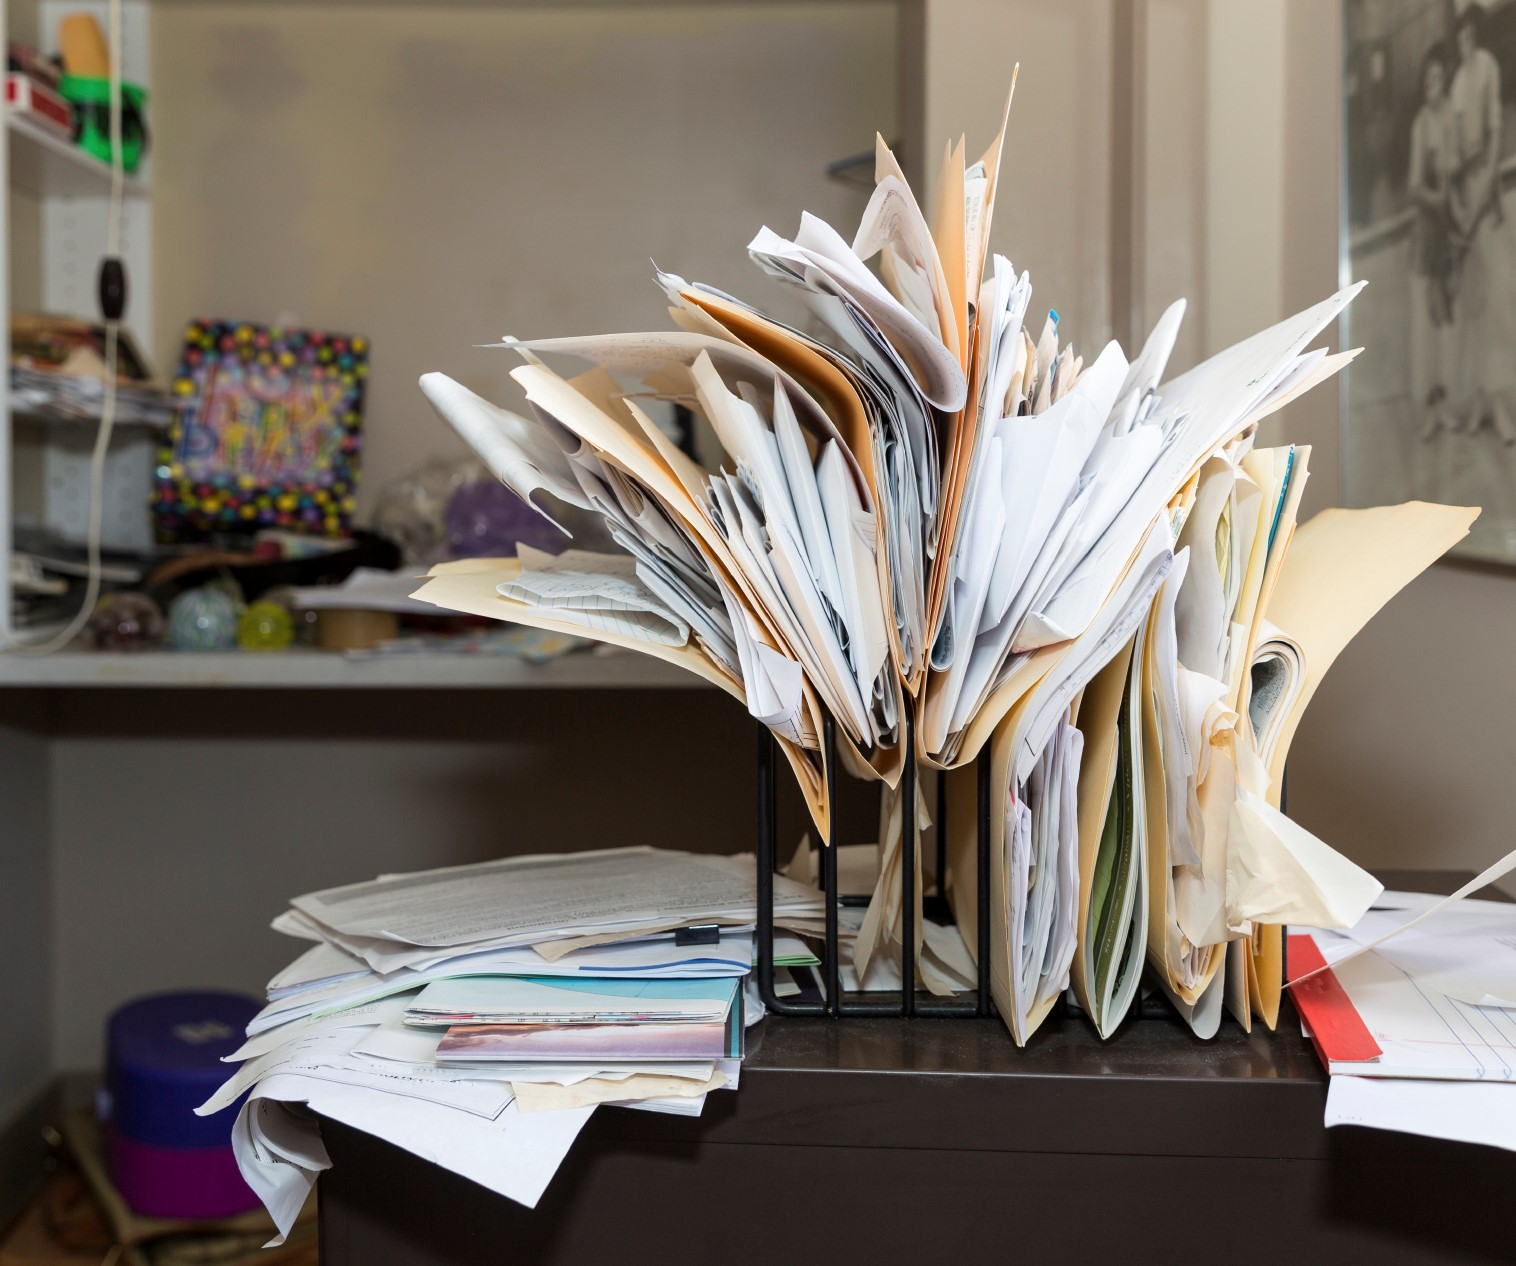 Use a Professional Organizer if You Have Too Much Paperwork